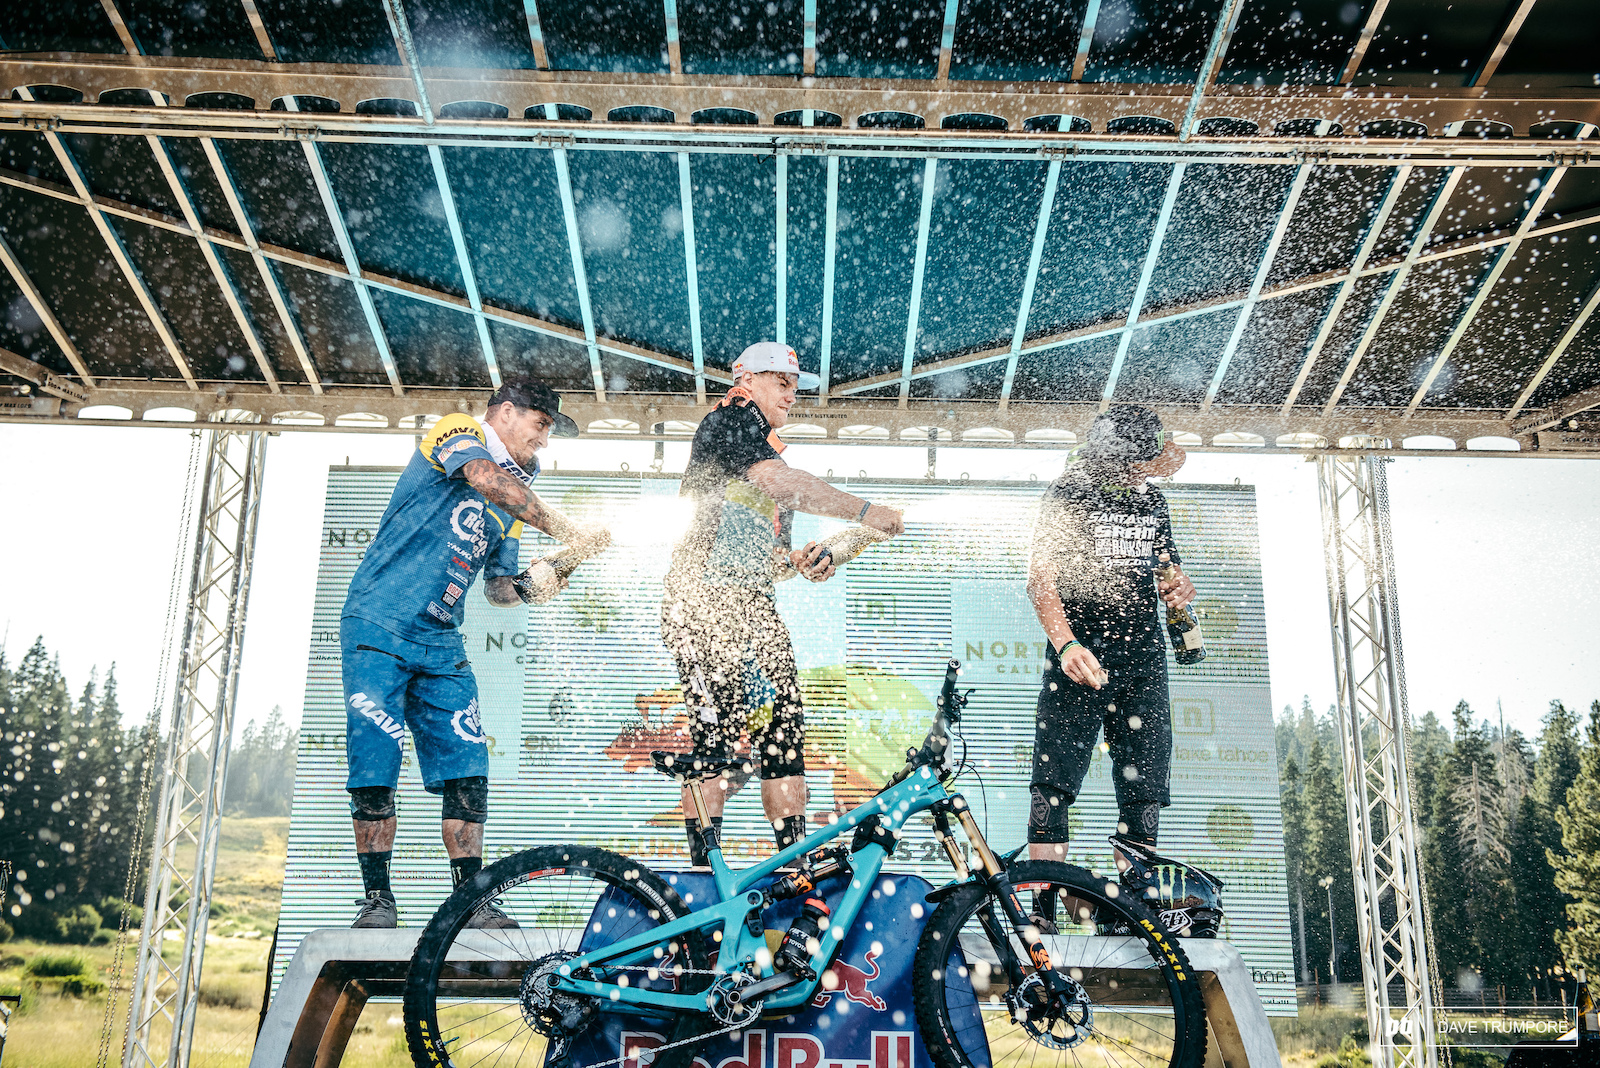 Richie Rude Sam Hill and Mitch Ropelato make in rain in Northstar